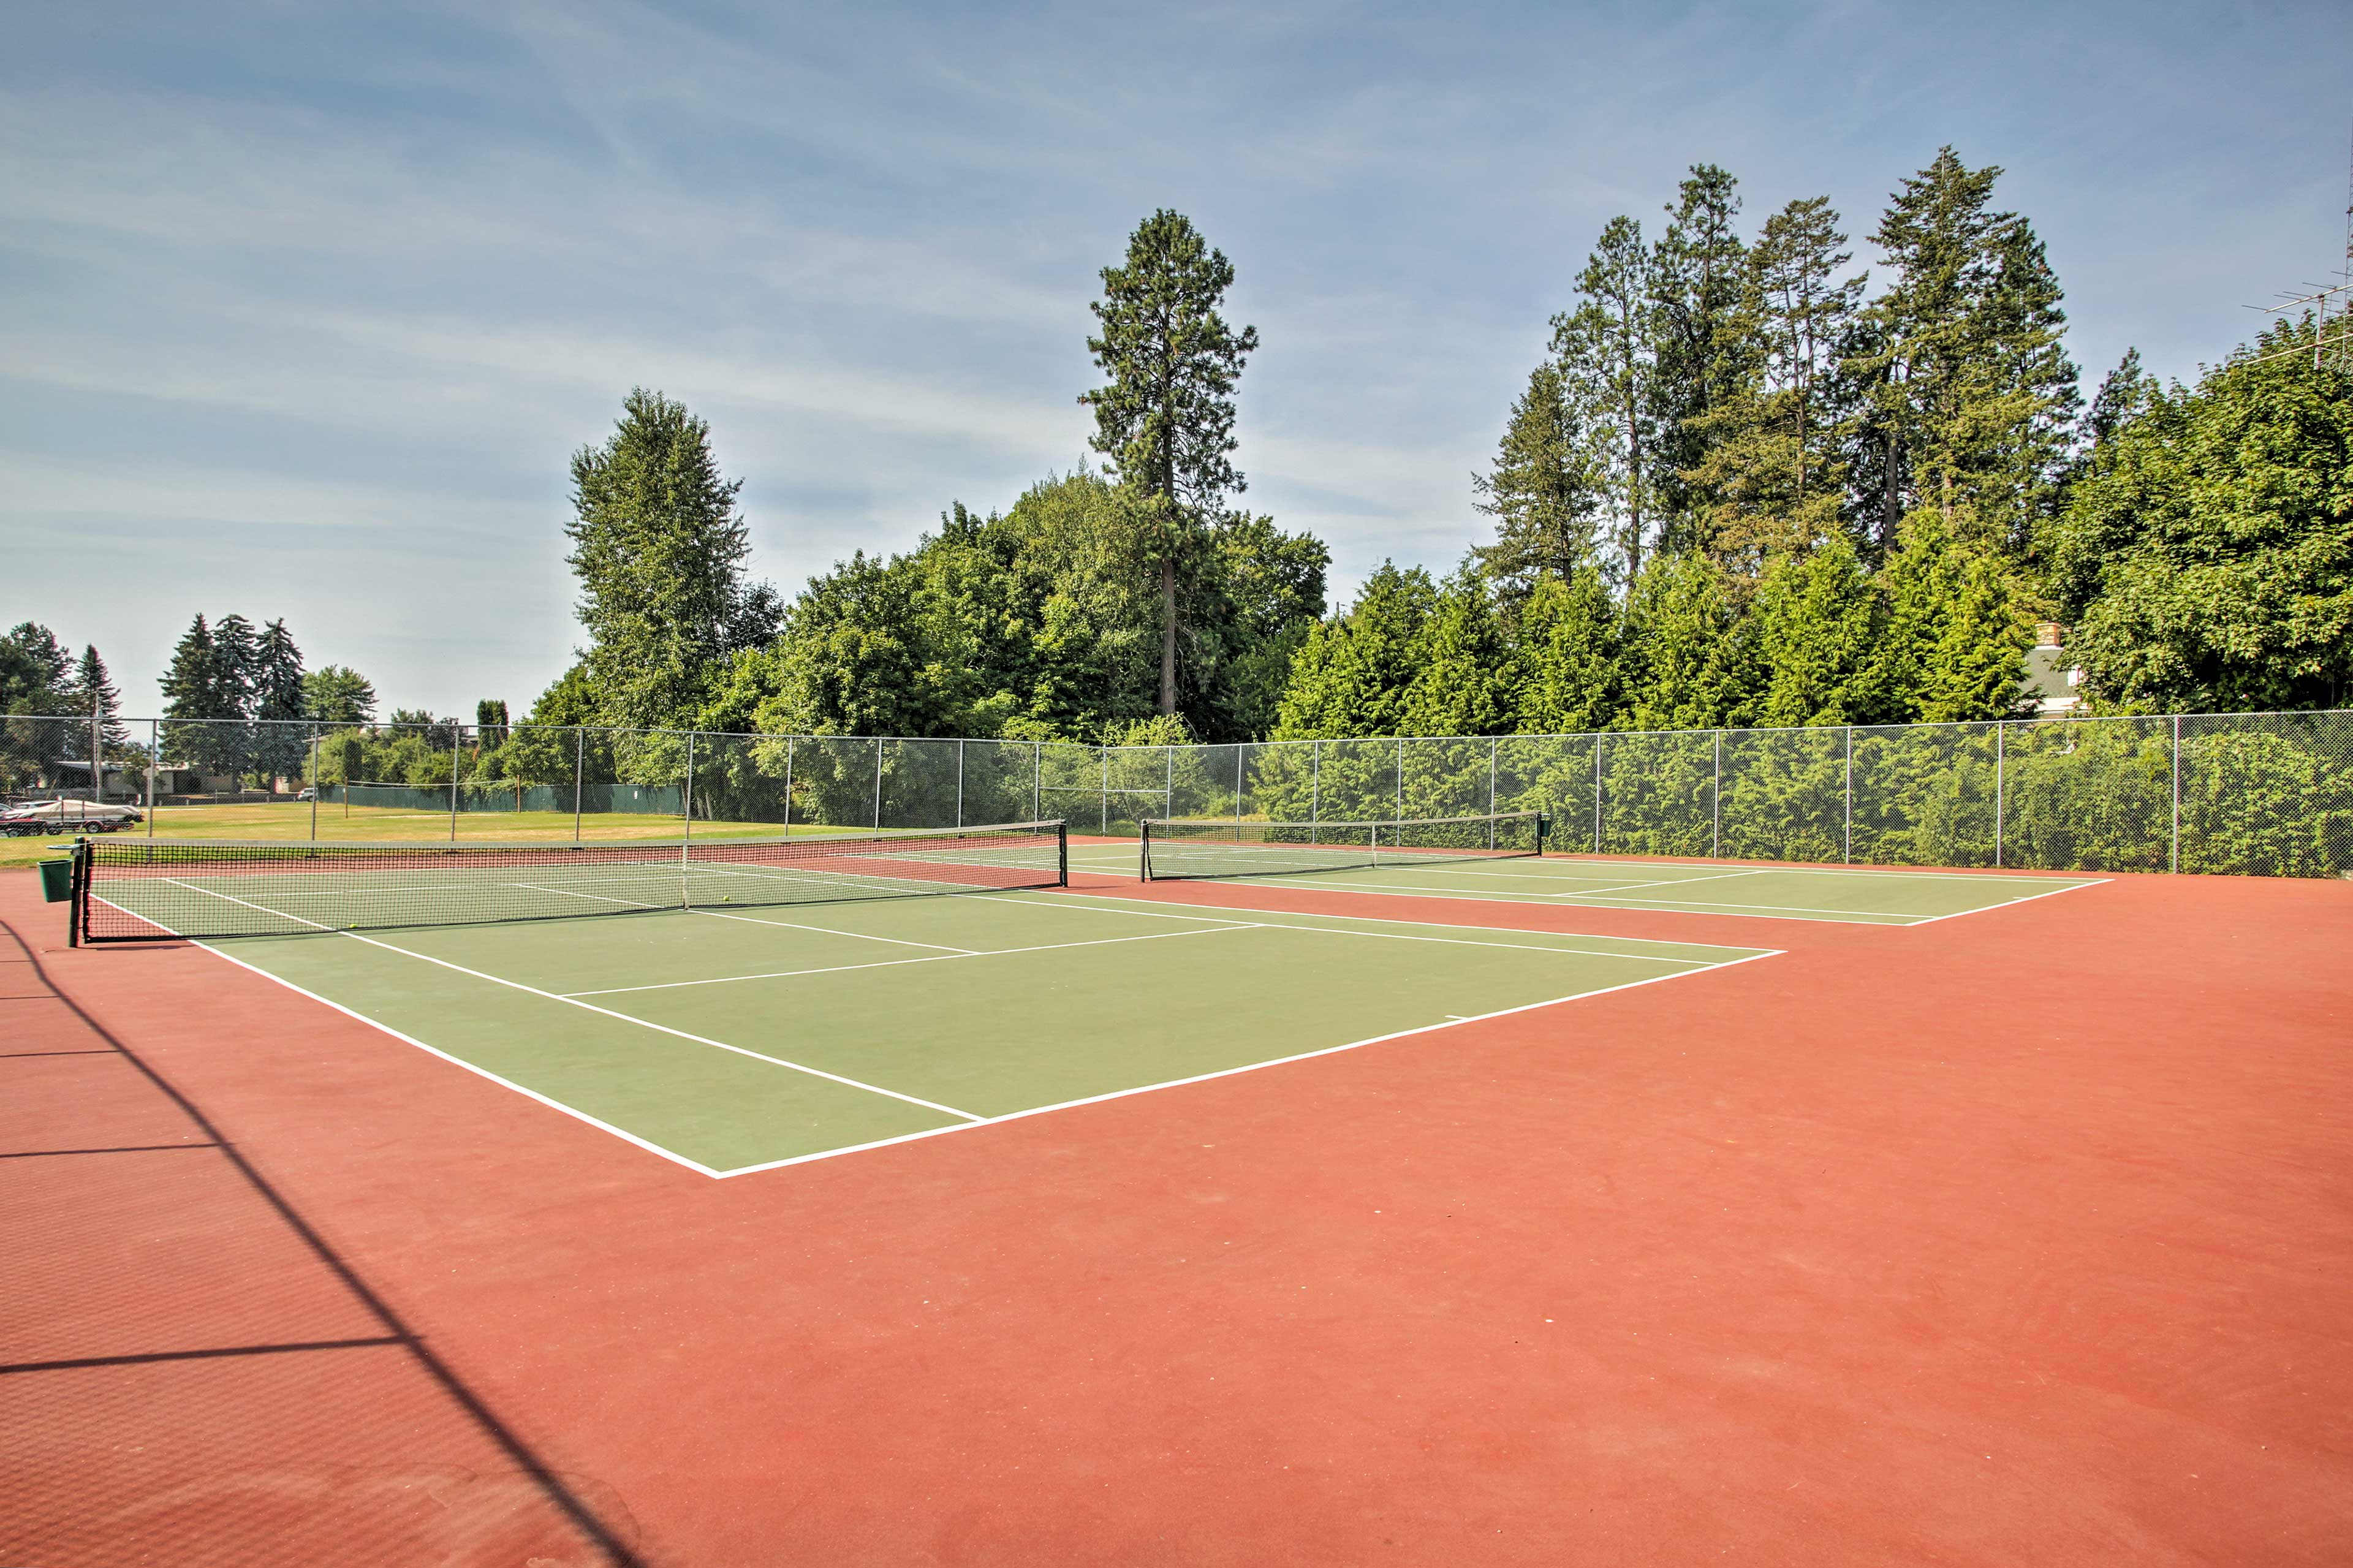 Play a match of tennis for some fun exercise.